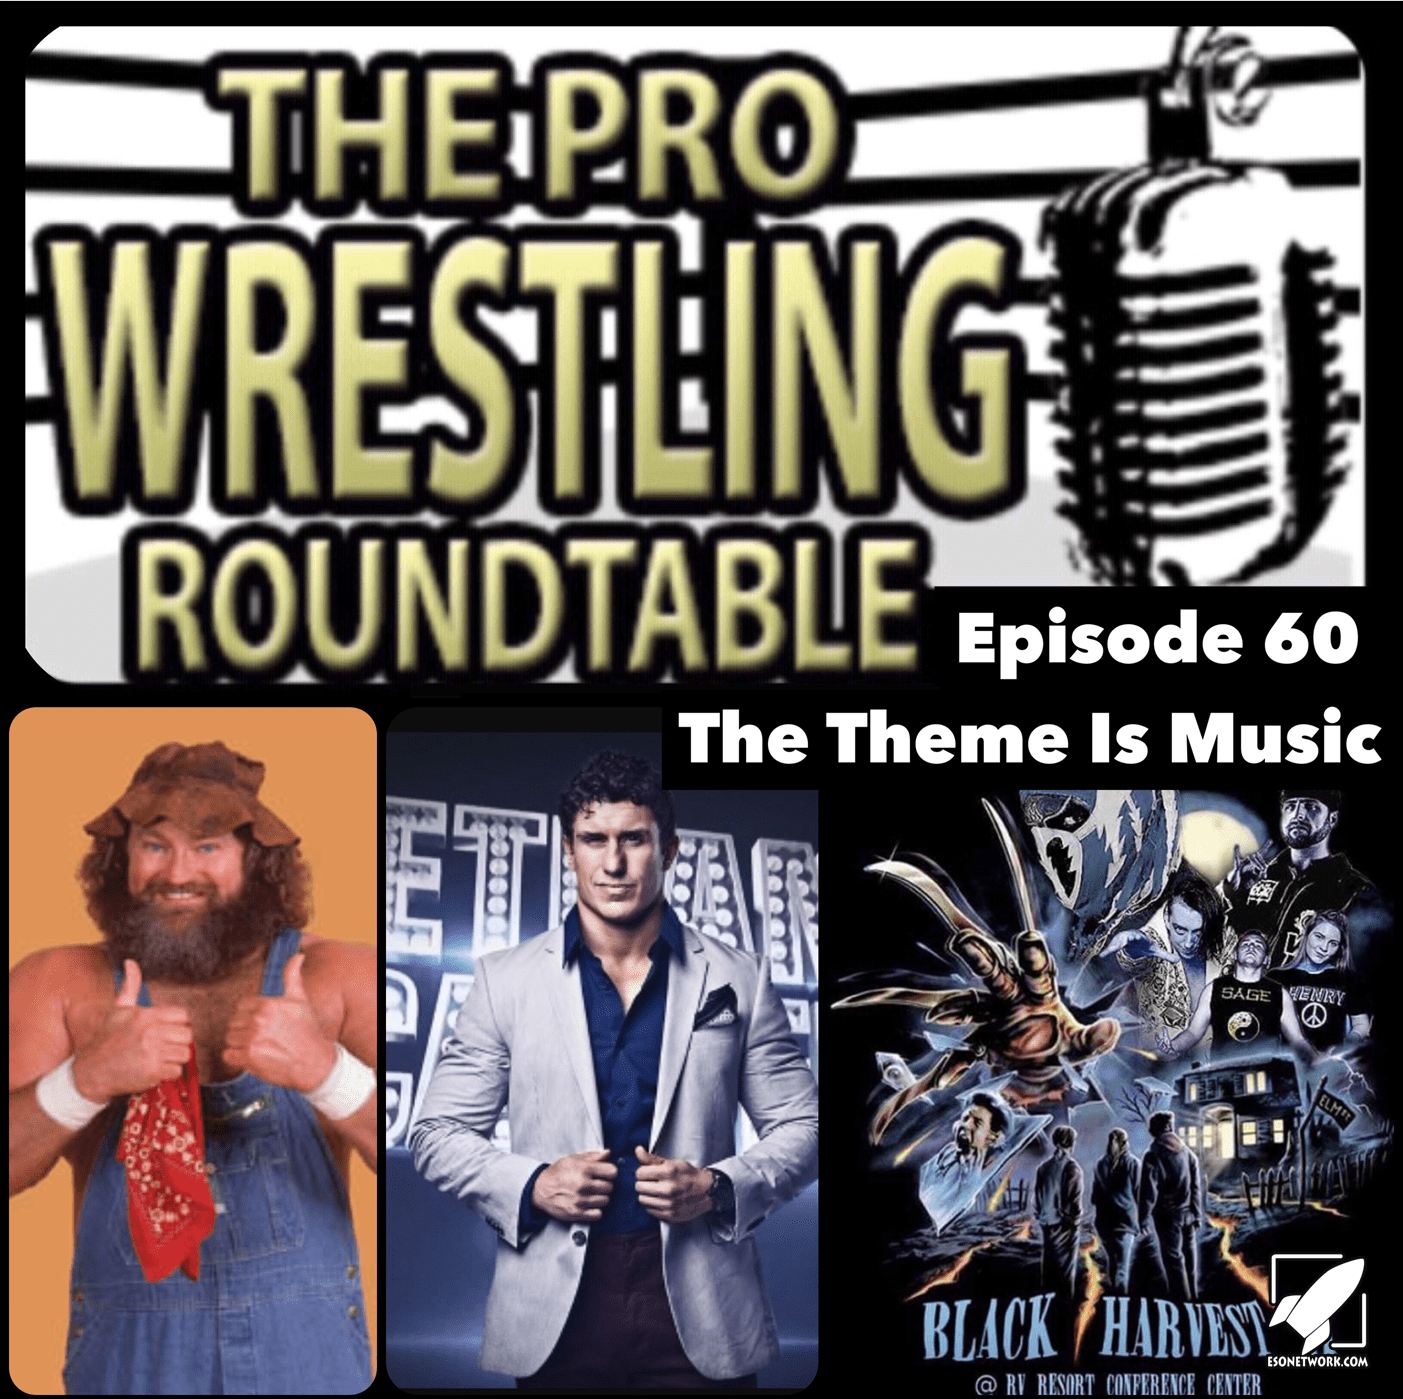 The Pro Wresting Roundtable Ep 60